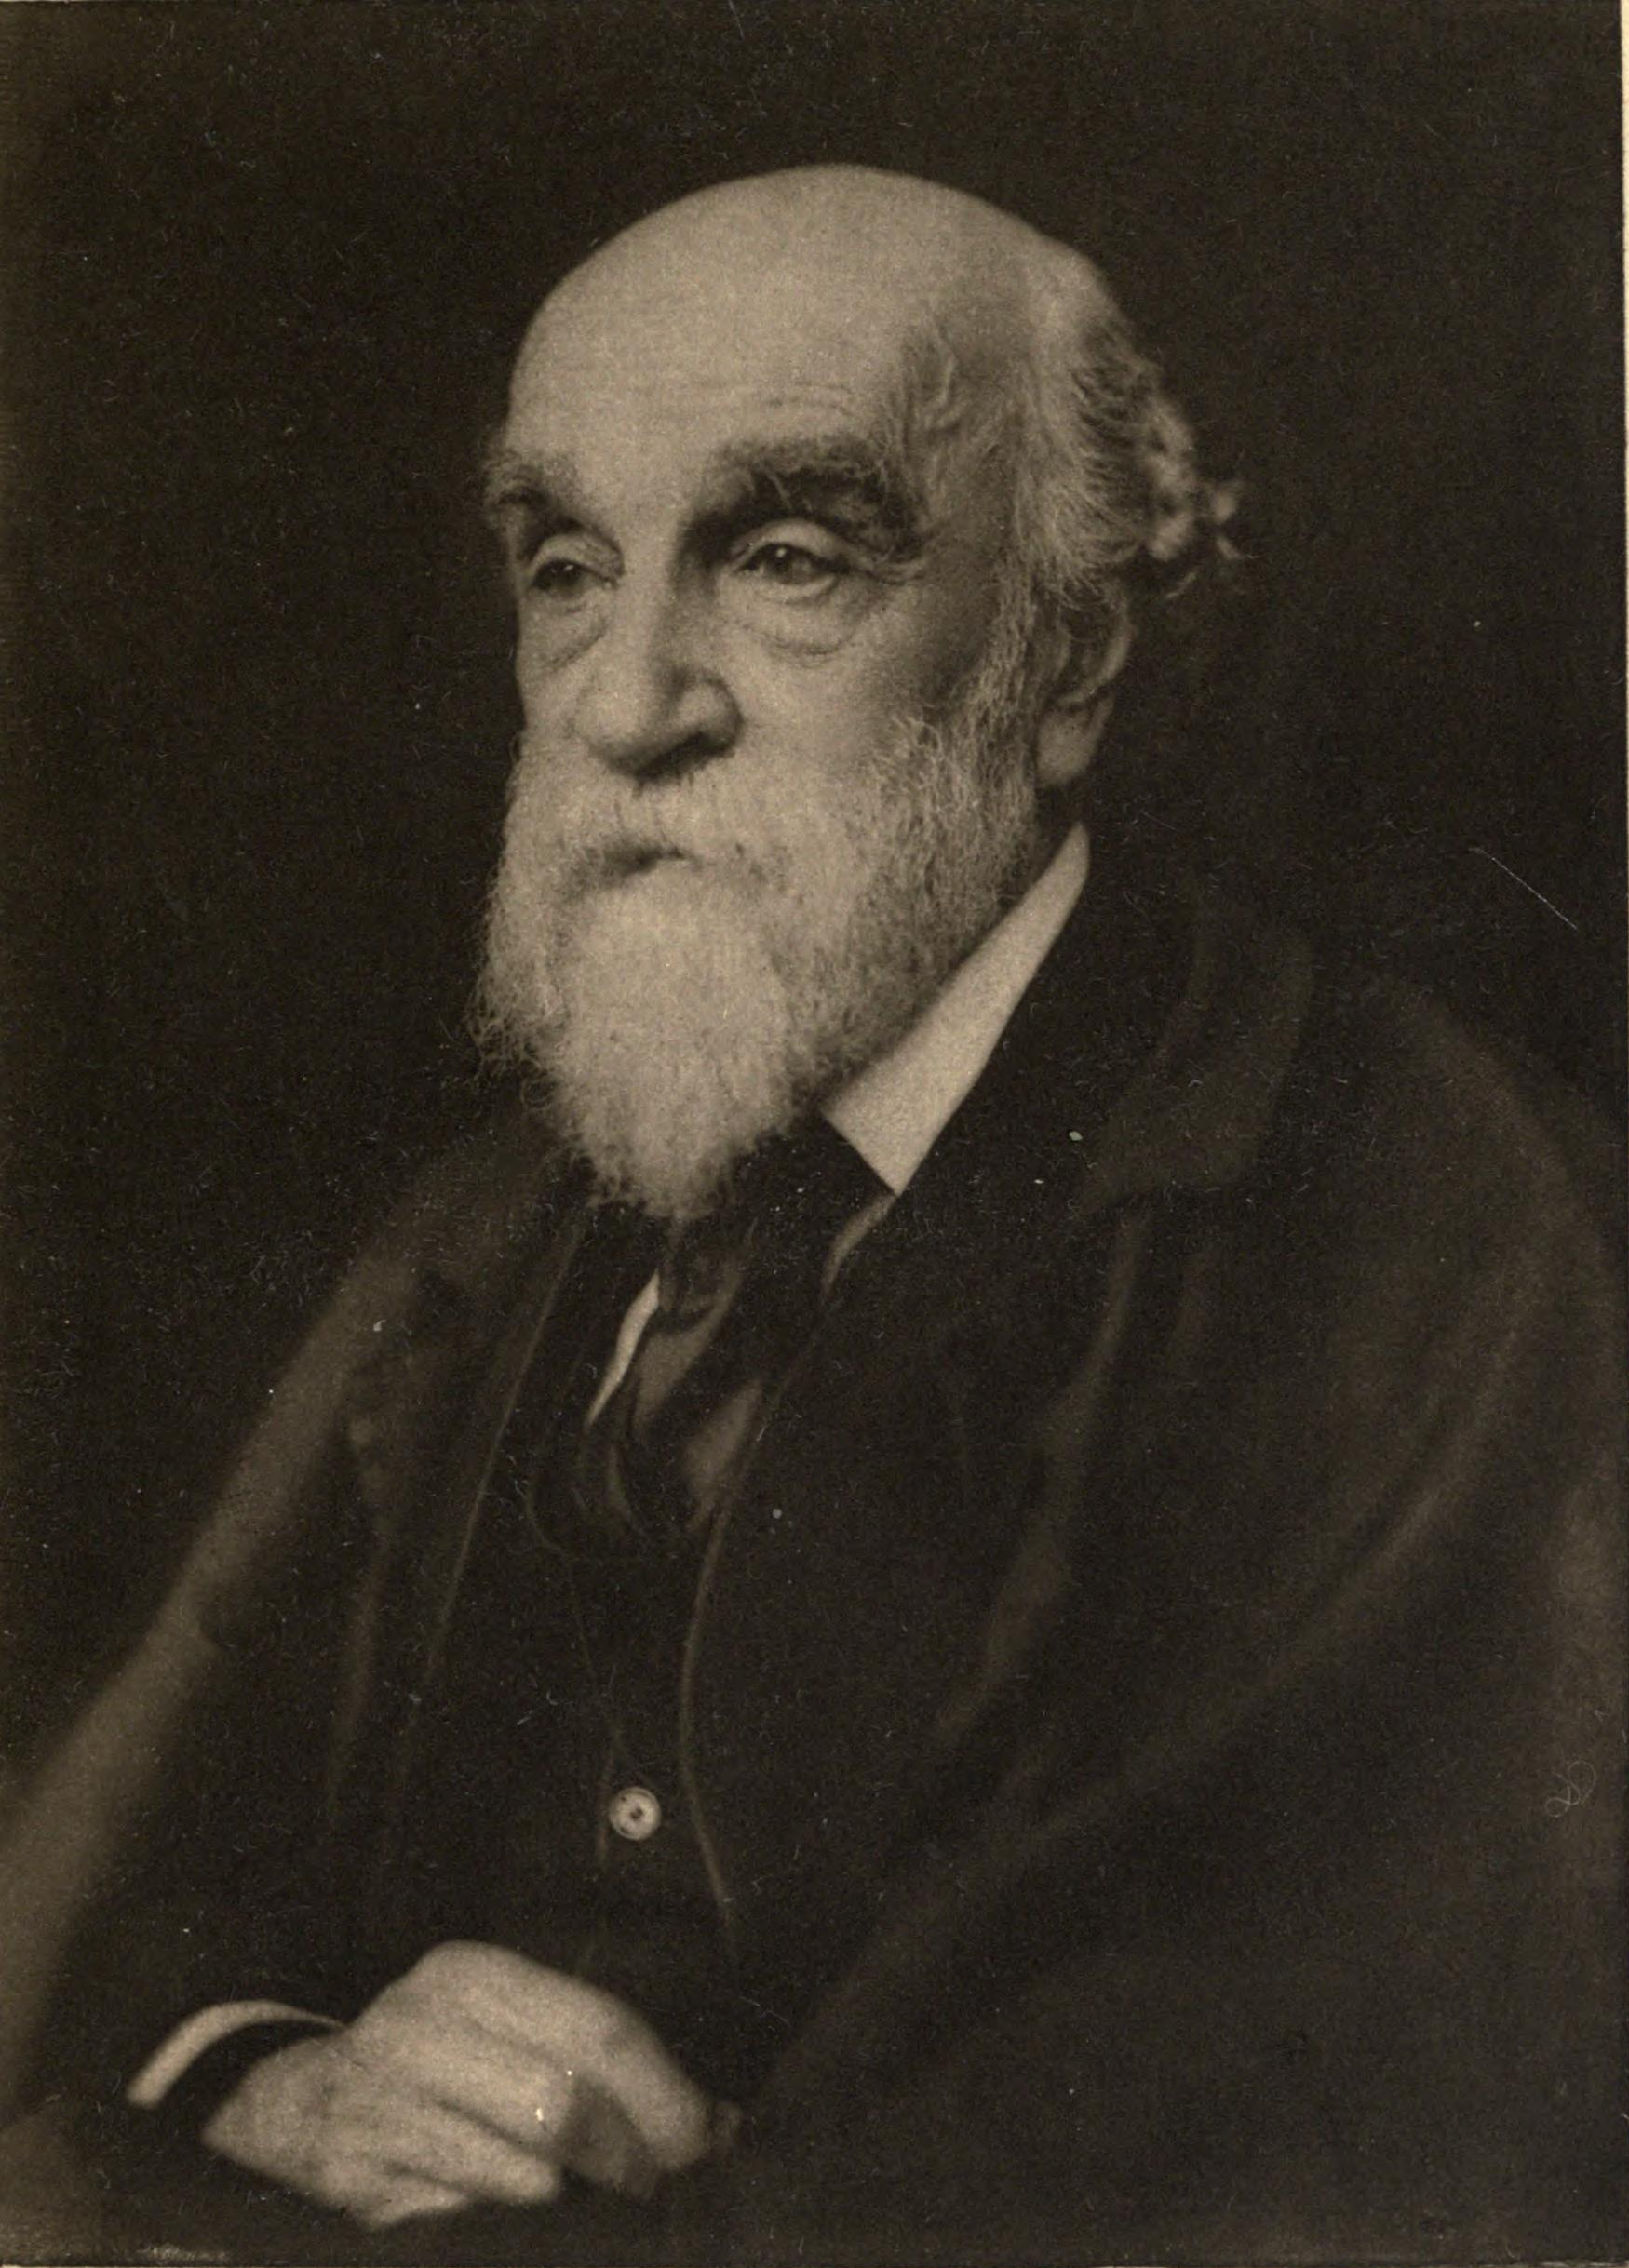 Image of Lowes Cato Dickinson from Wikidata